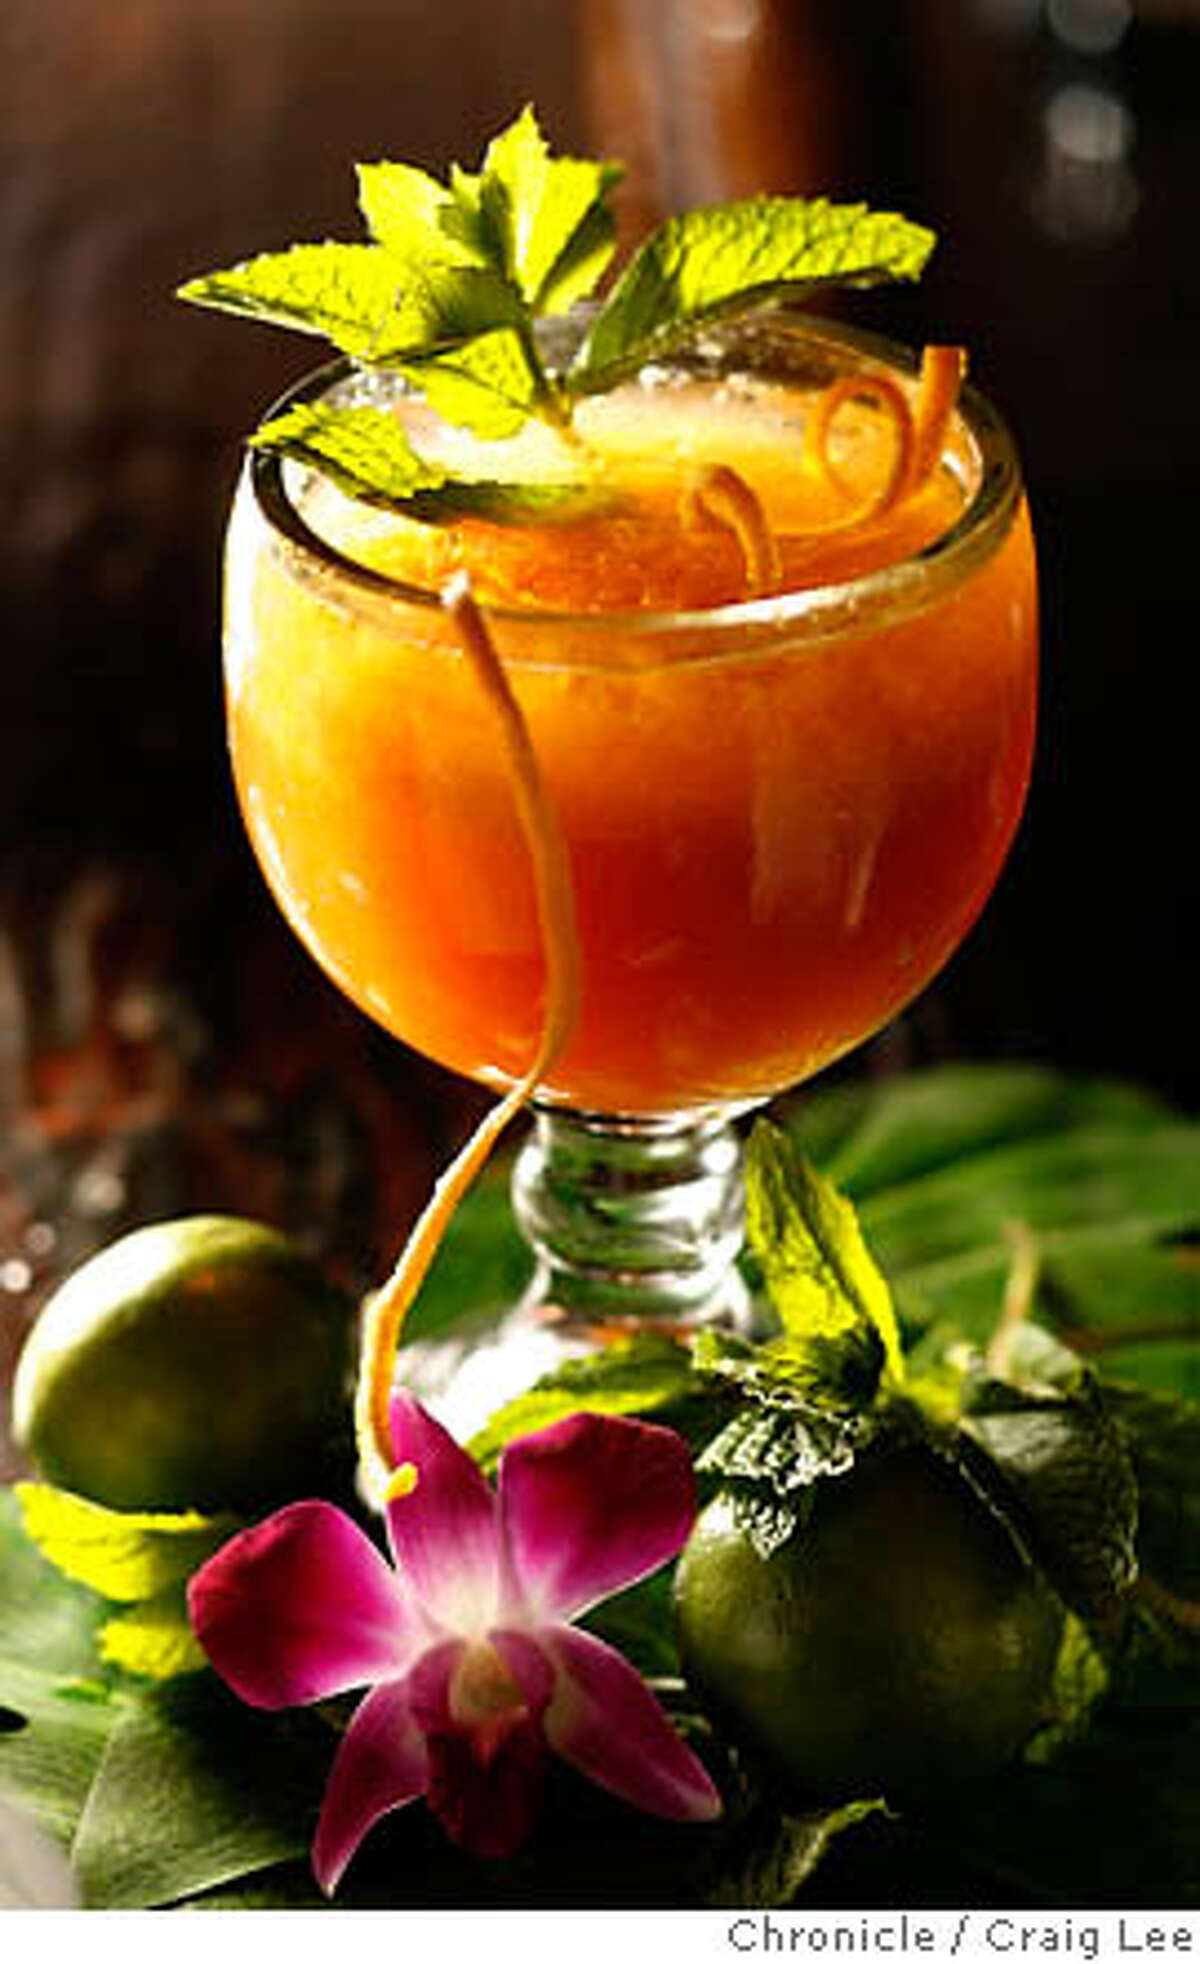 SUMMERDRINKS10_094_cl.JPG Summer drinks. Photo of a drink called the